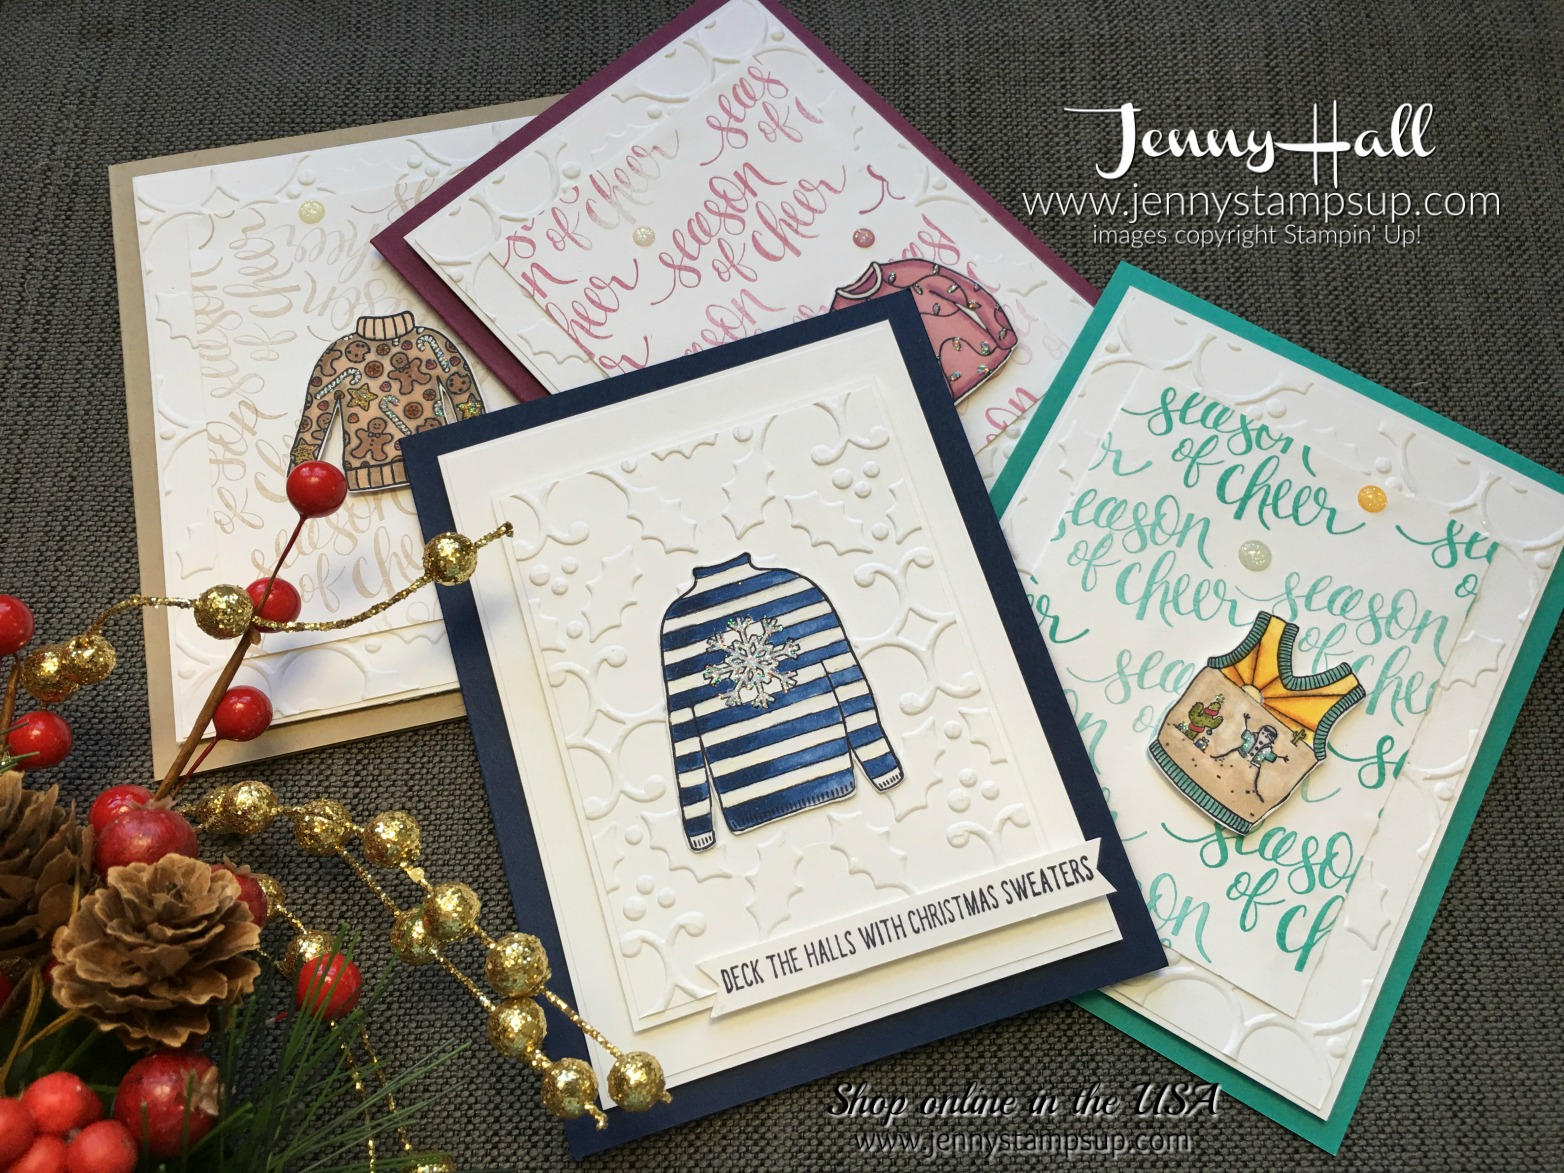 Christmas Sweaters cards by Jenny Hall at www.jennystampsup.com for cardmaking, scrapbooking, video tutorials and more!